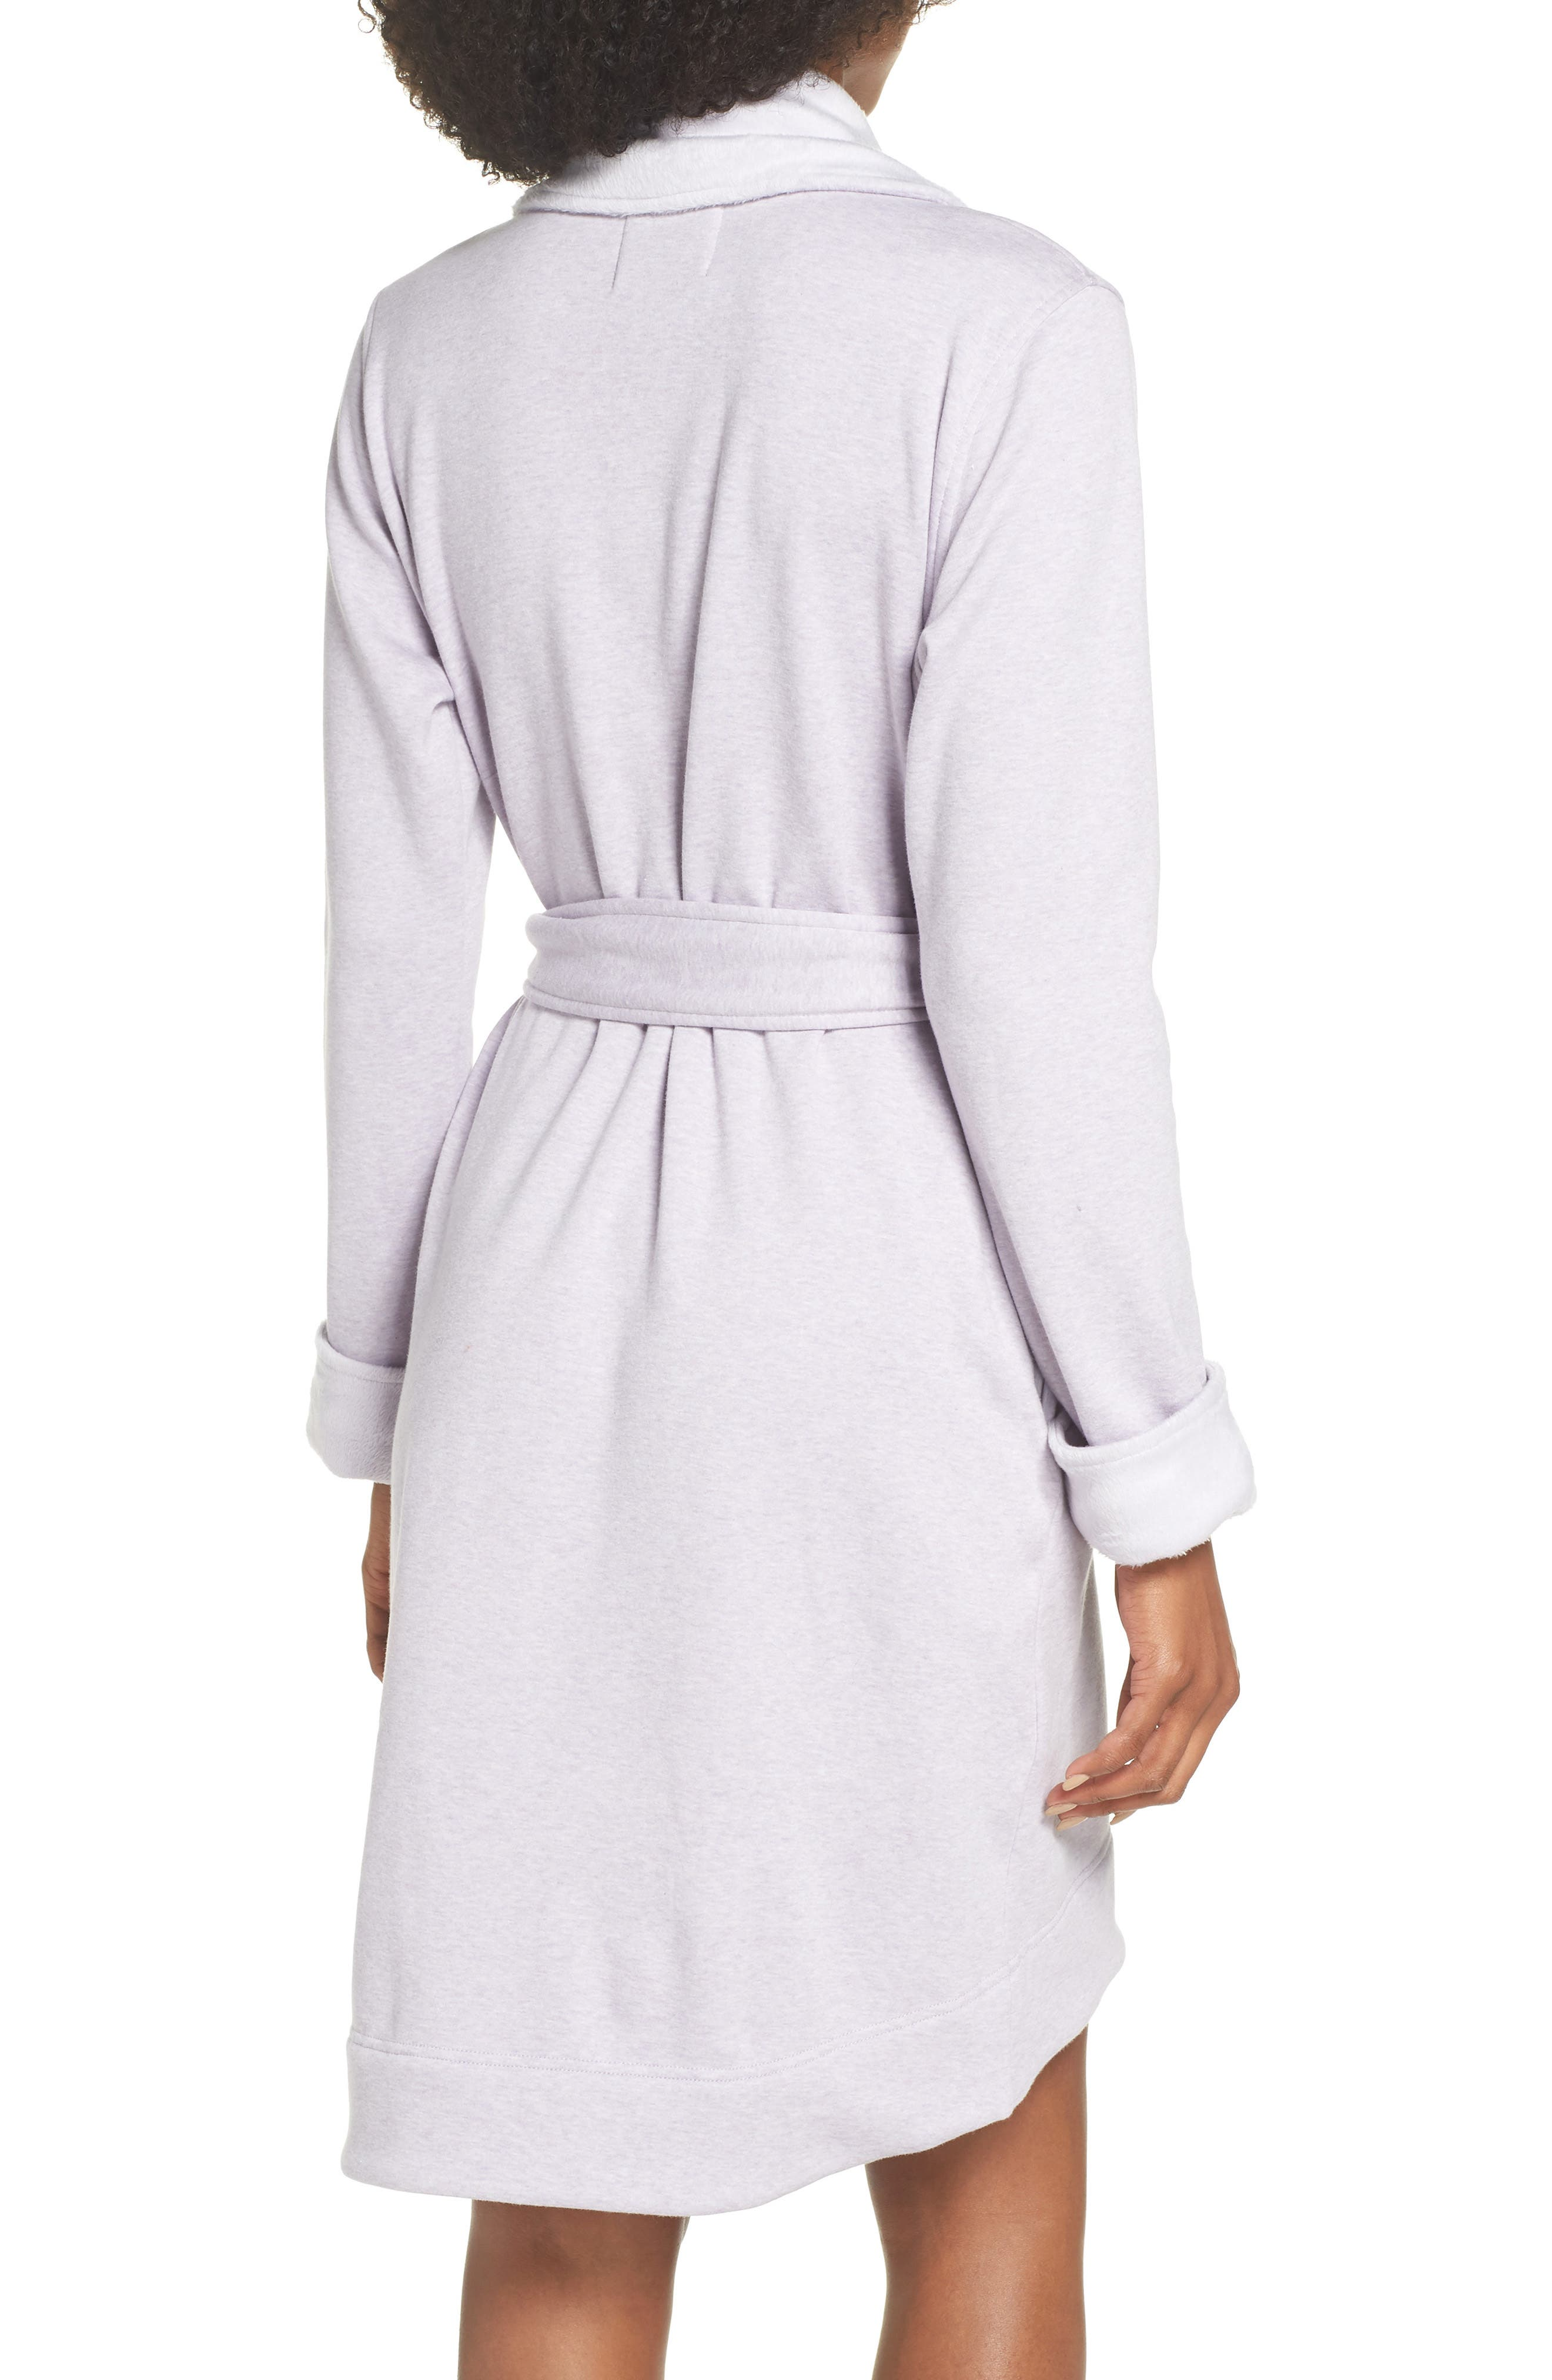 Blanche II Short Robe,                             Alternate thumbnail 13, color,